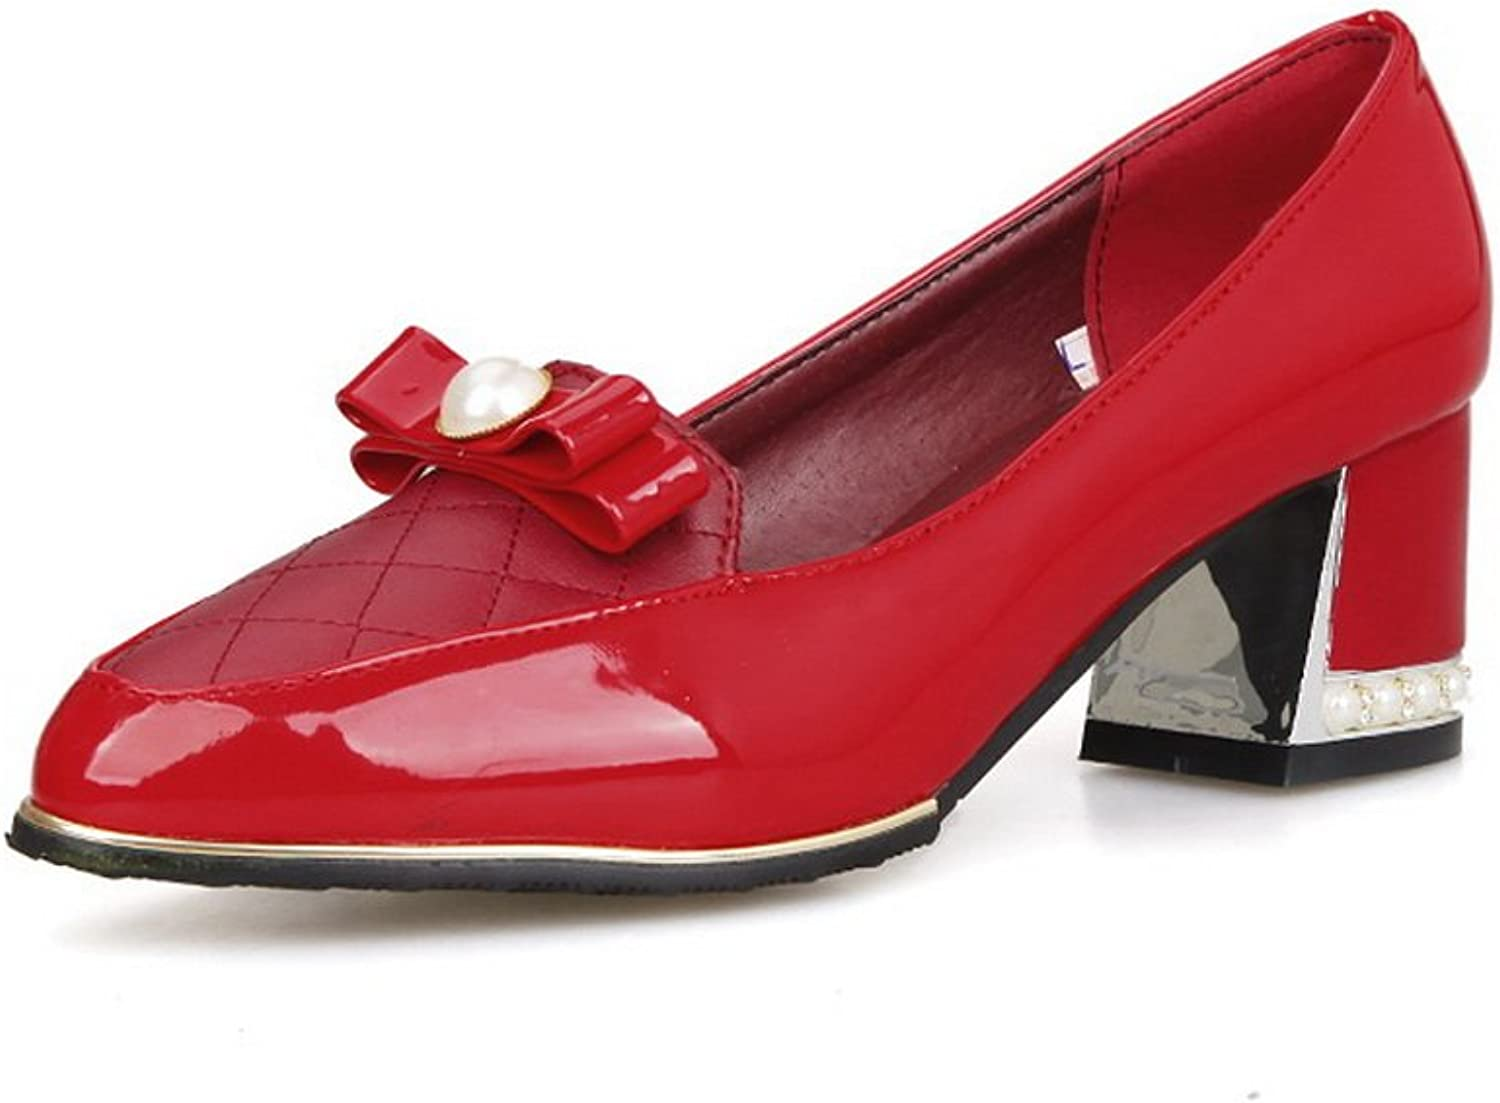 1TO9 Girls Pull-On Spun gold Bowknot Pointed-Toe Red Patent Leather Pumps-shoes - 5.5 B(M) US